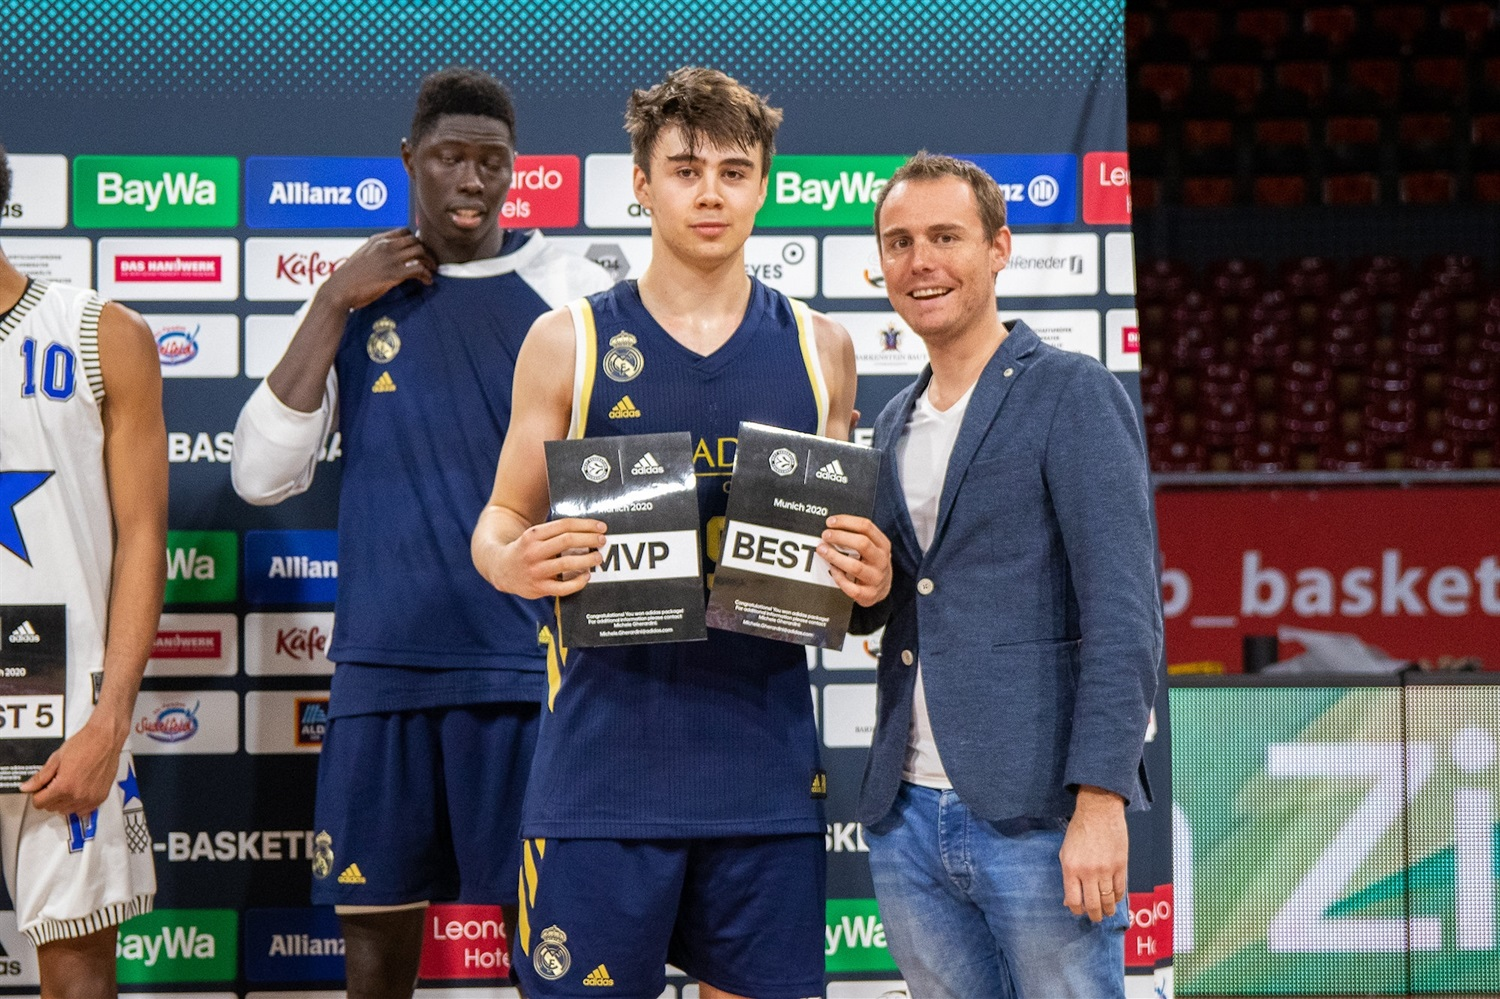 Juan Nuñez of U18 Real Madrid MVP ANGT Munich 2020 (photo Begum Unal - Bayern) - JT19